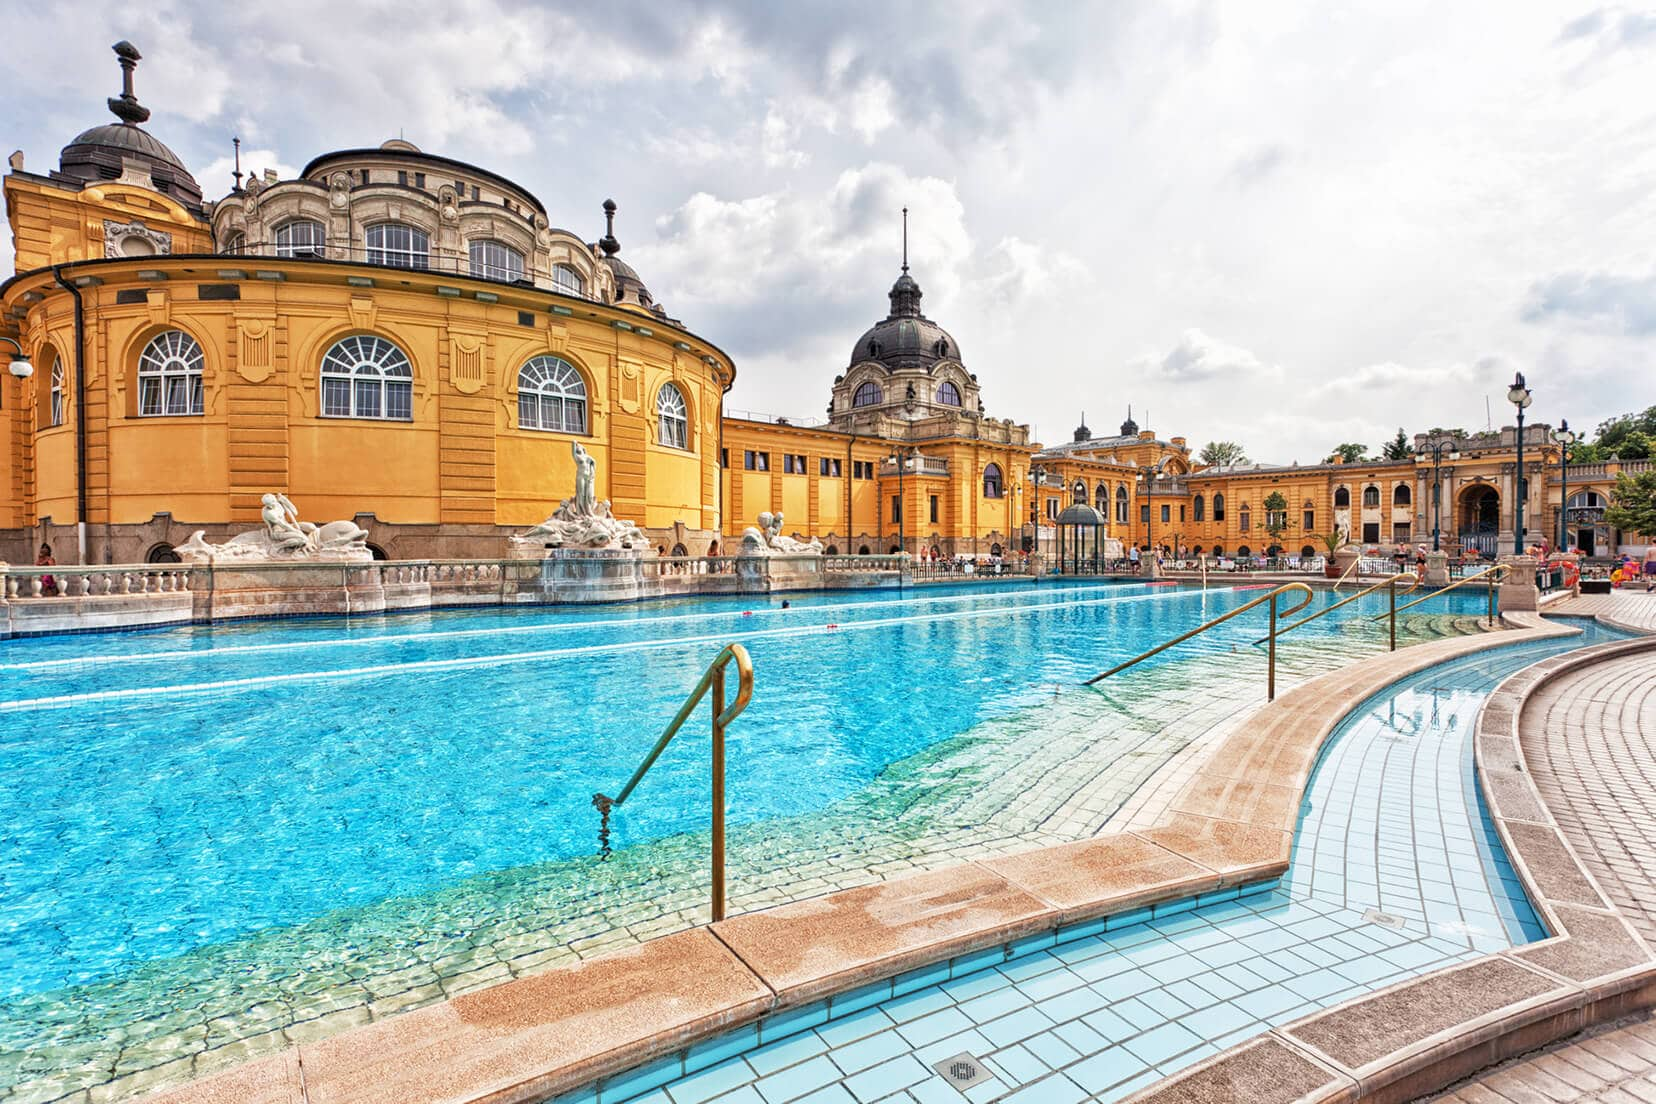 Budapest Instagram photo guide - Széchenyi Spa Thermal Baths